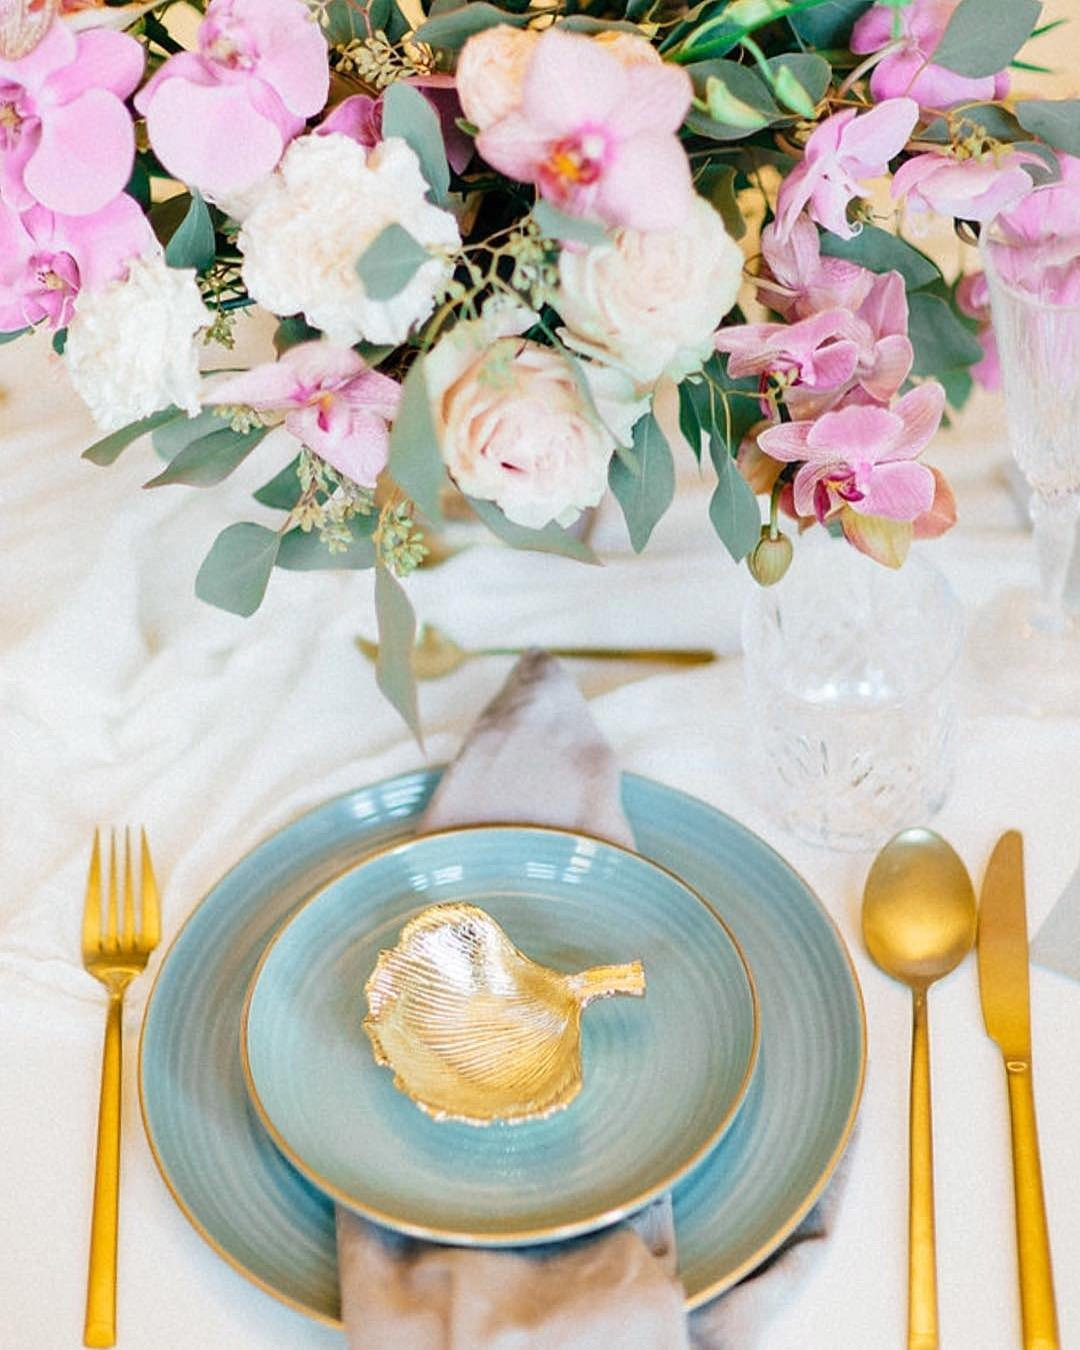 wedding colors Rose Pink Blush Pink Turquoise Sky Blue wedding flowers table setting